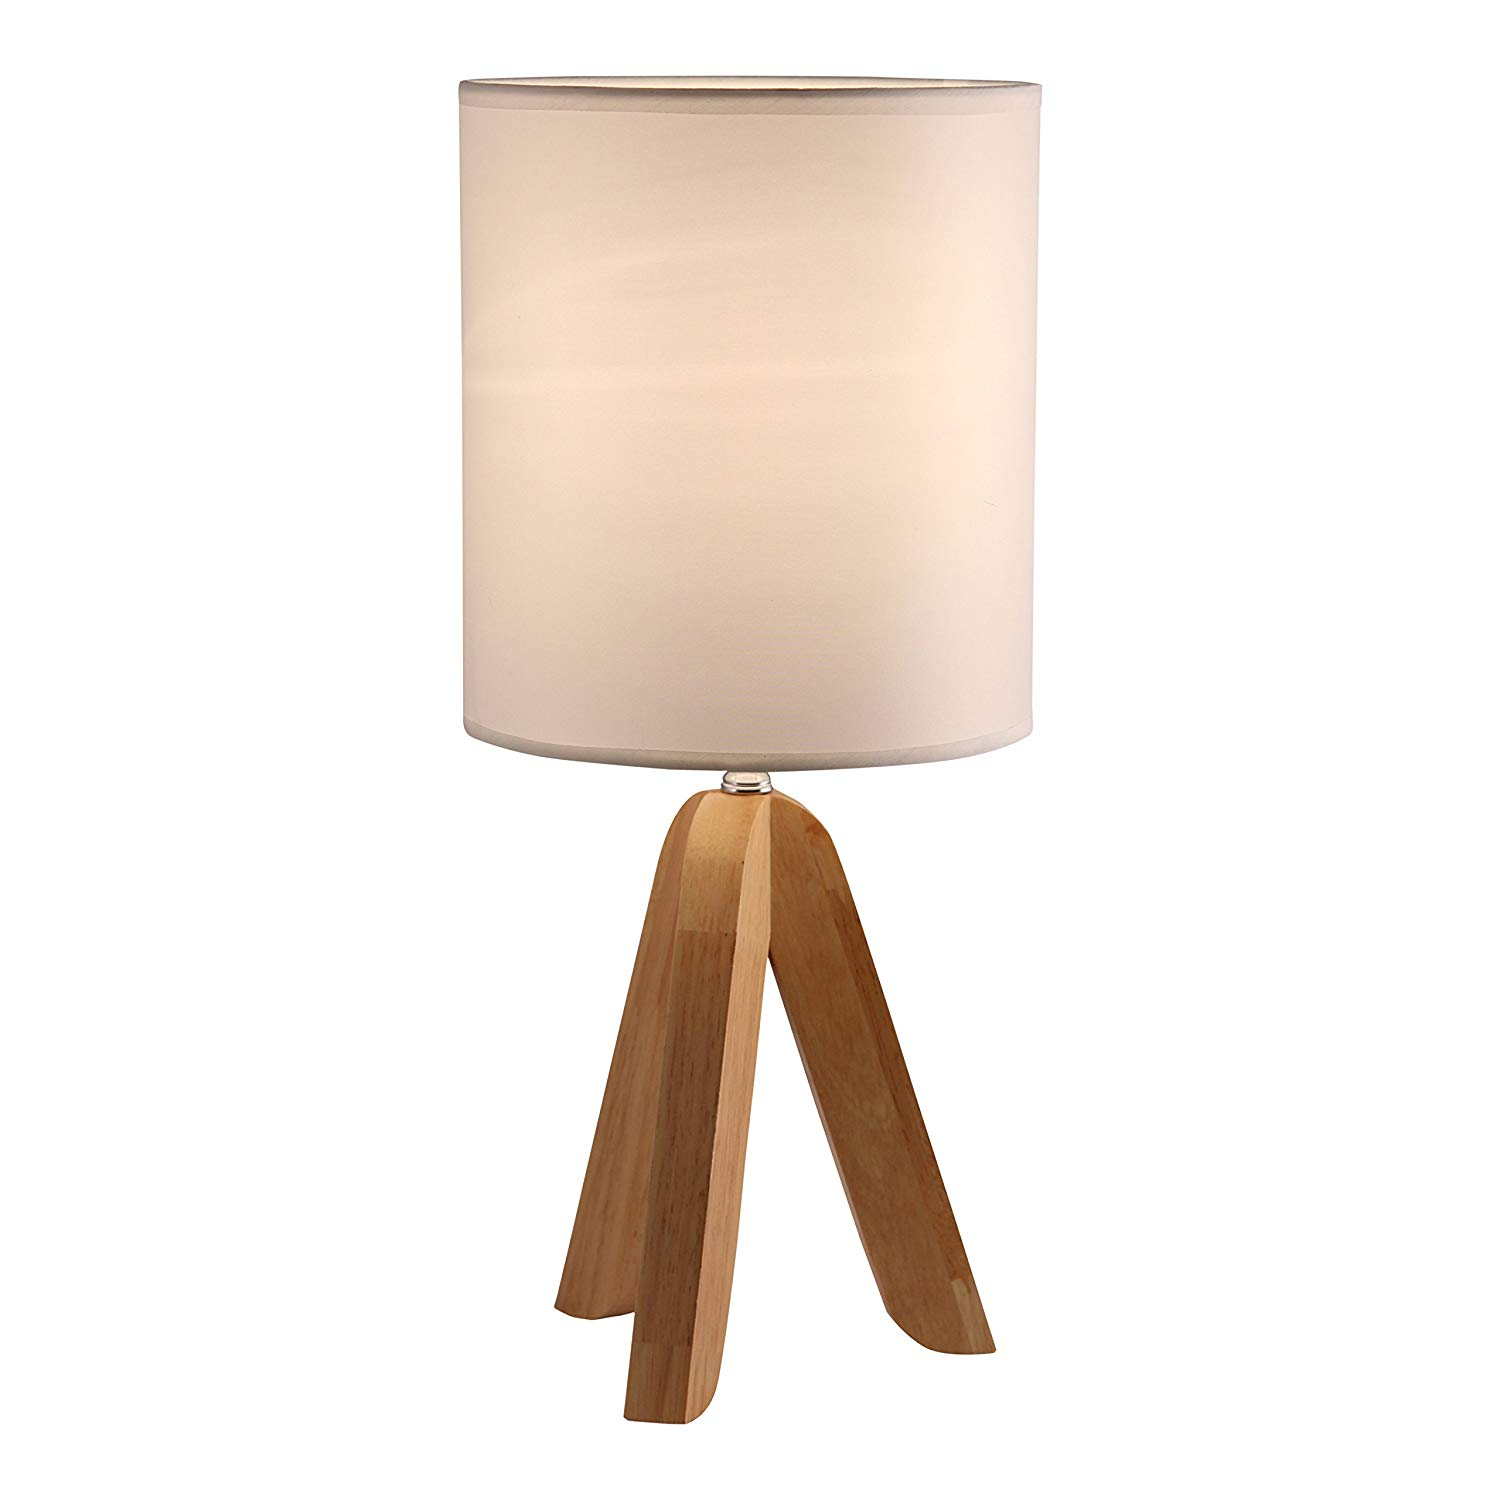 Tripod Table Lamp with Natural Wooden Tripod Base - $29.95